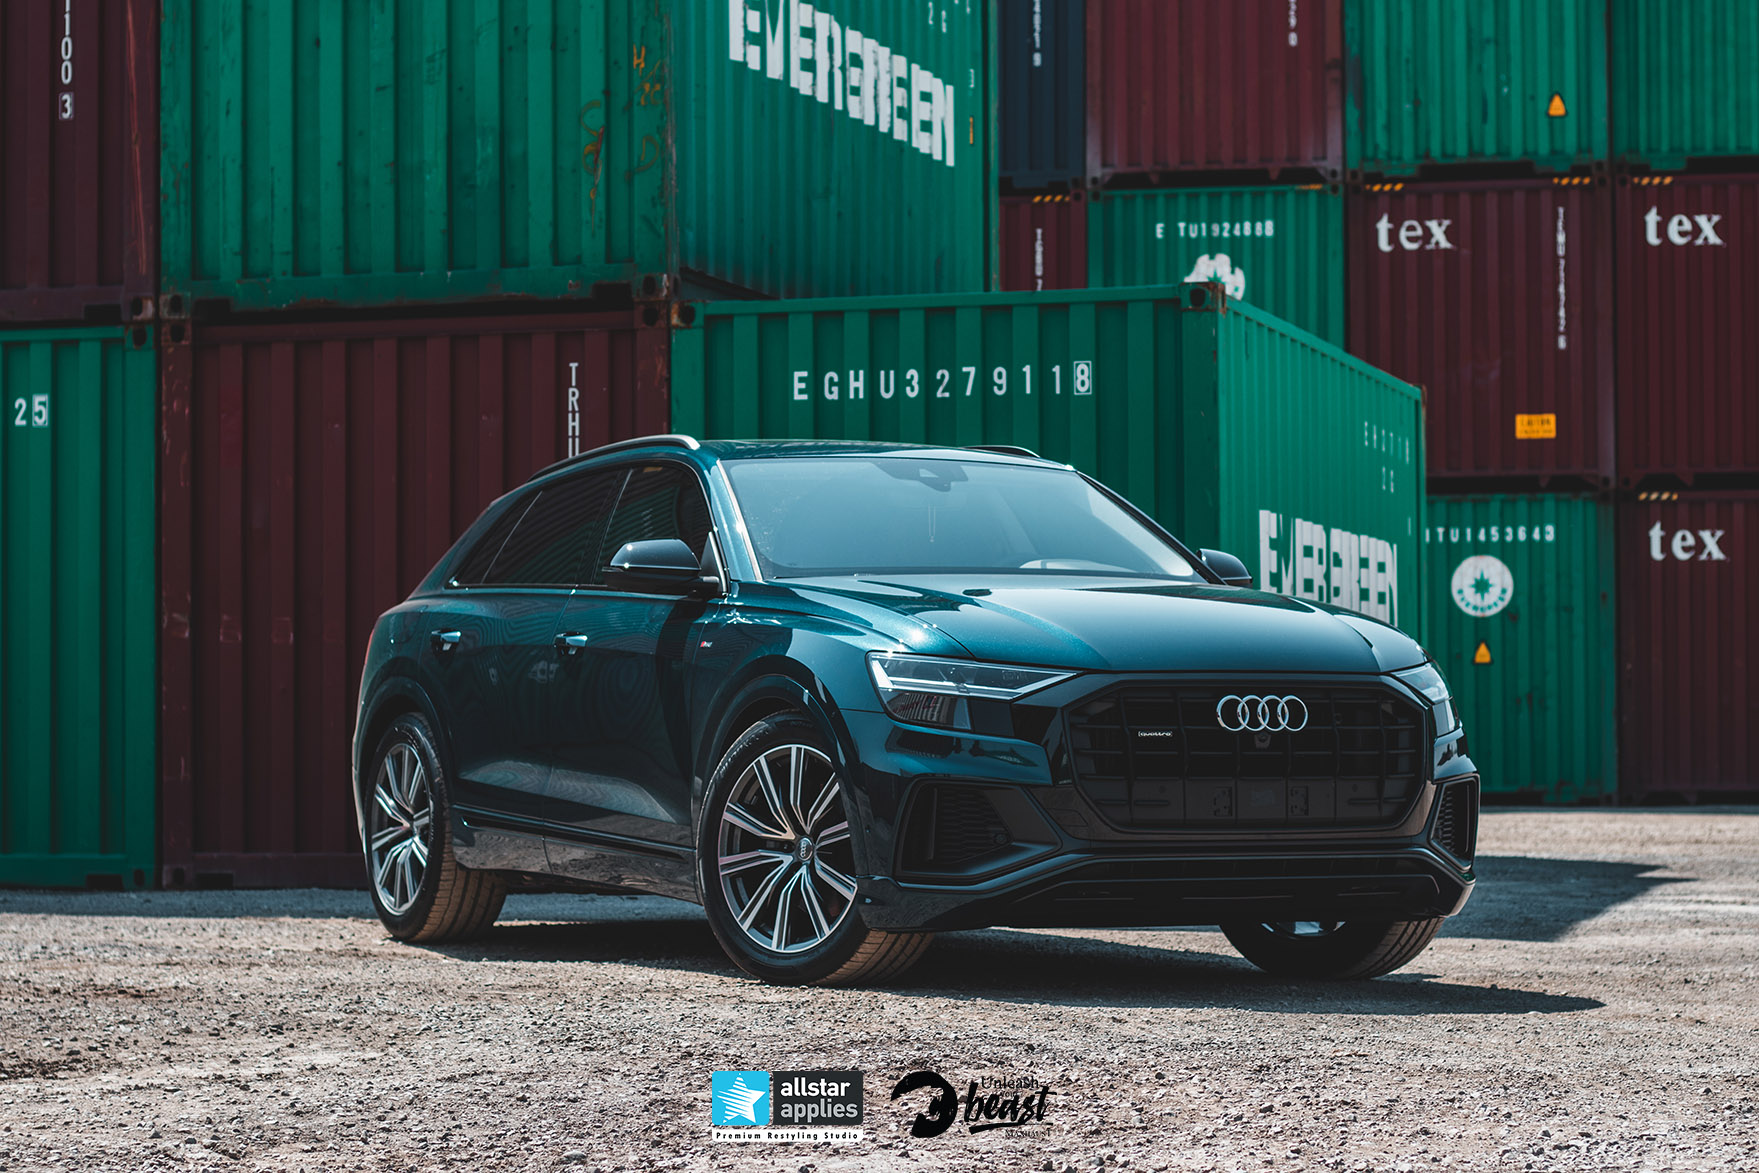 AUDI Q8 MAXHAUST ALLSTAR APPLIES (20)